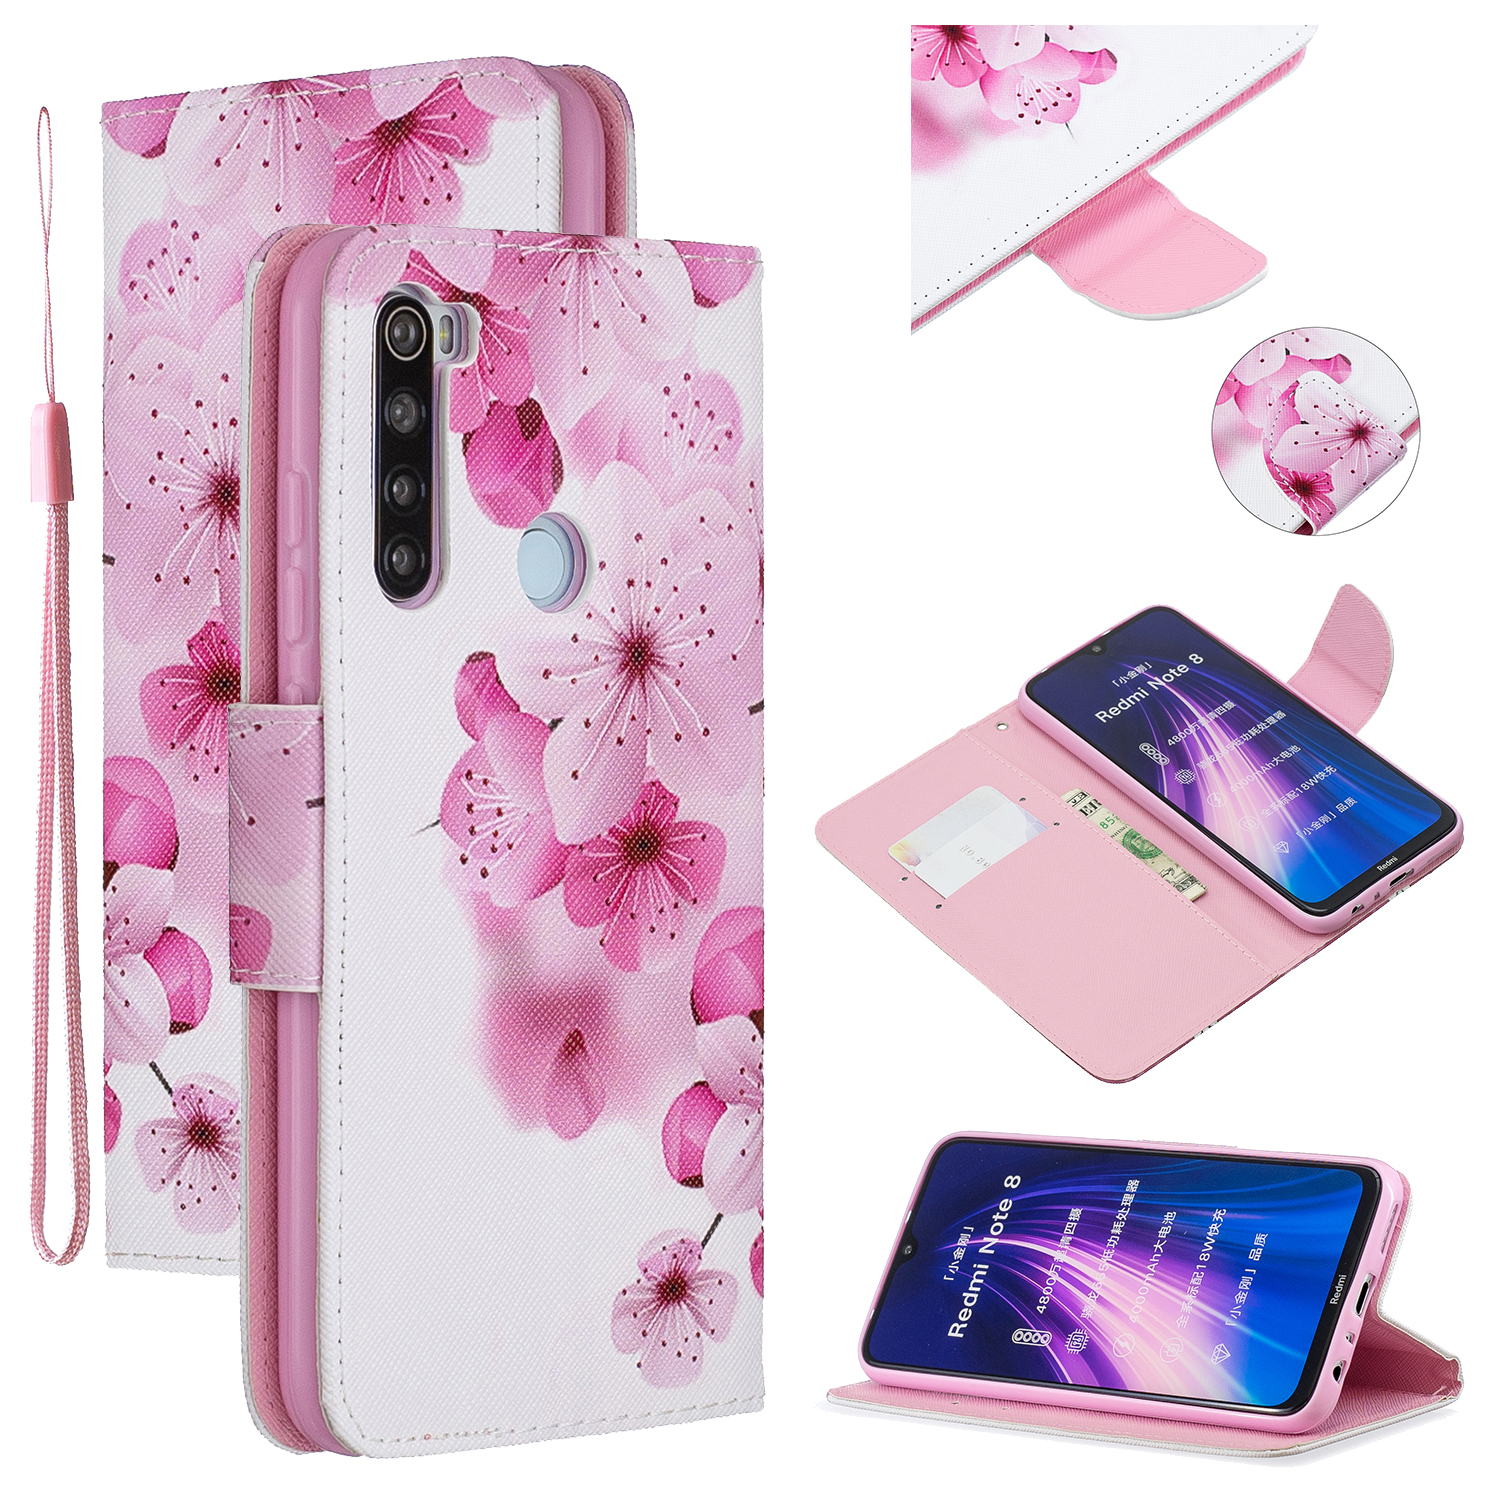 For Redmi Note 8/8 Pro Cellphone Cover Stand Function Wallet Design PU Leather Smartphone Shell Elegant Pattern Printed  peach blossom